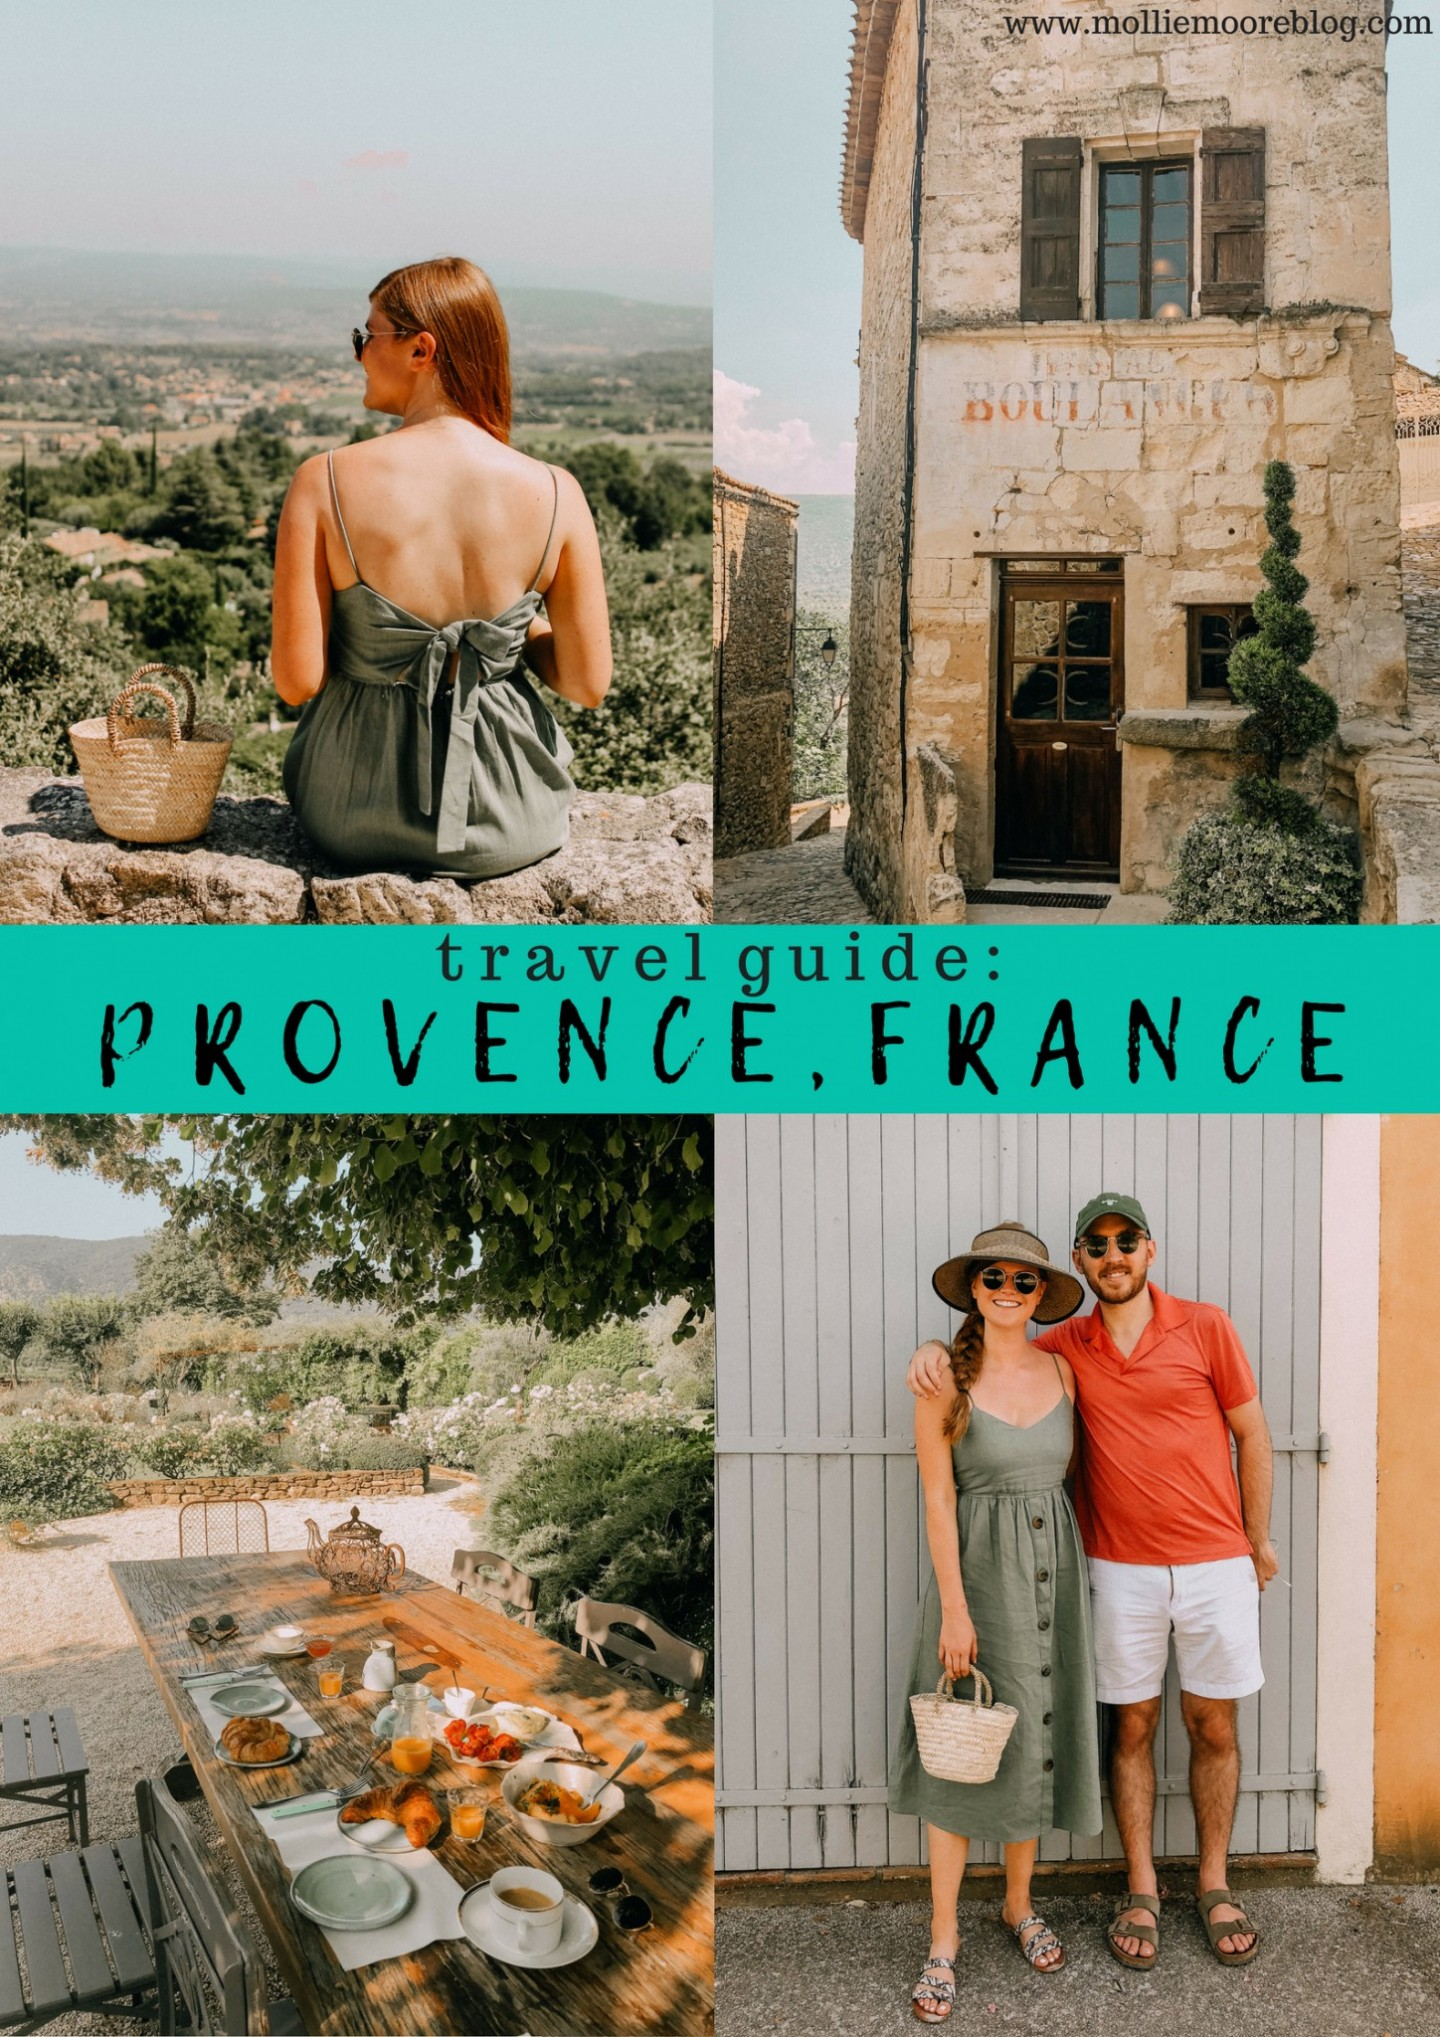 Lifestyle blogger Mollie Moore shares her Provence travel guide